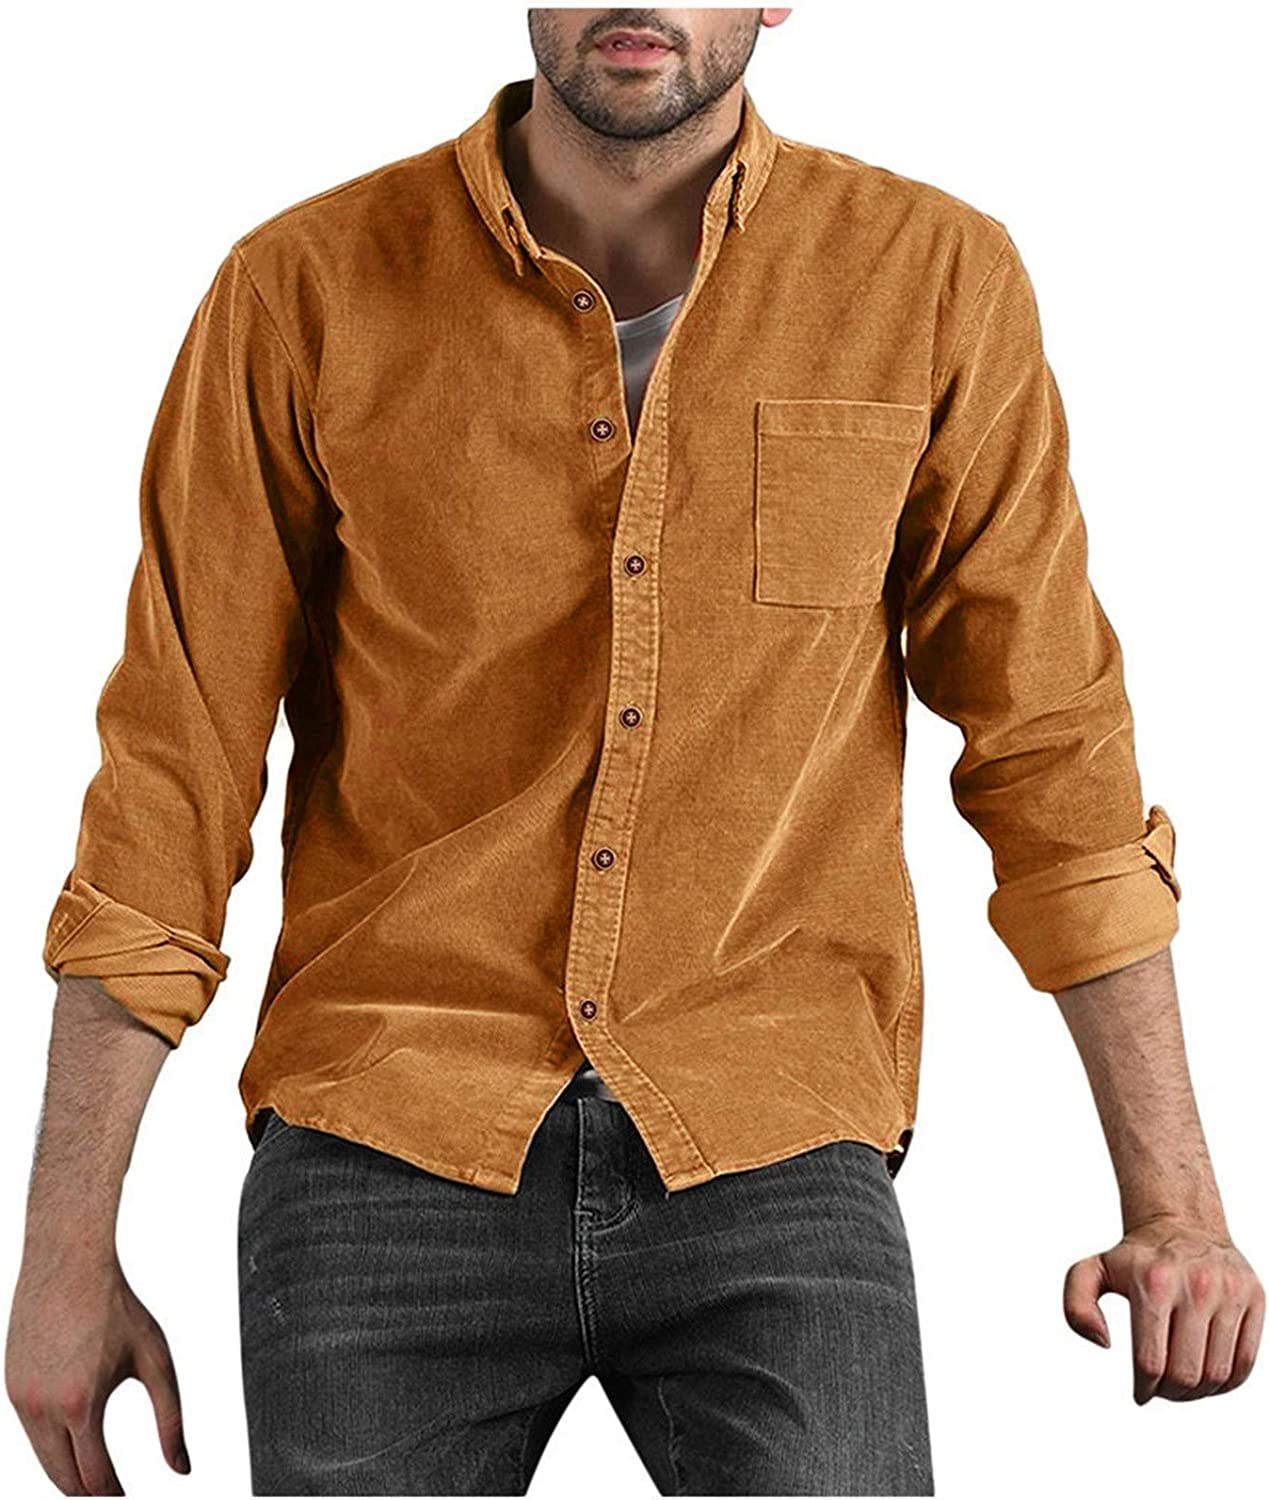 Mens Slim-fit T-Shirt Long Sleeve Casual Button Down Lapel Tees Corduroy Solid Color Classic-fit Tops with Pocket